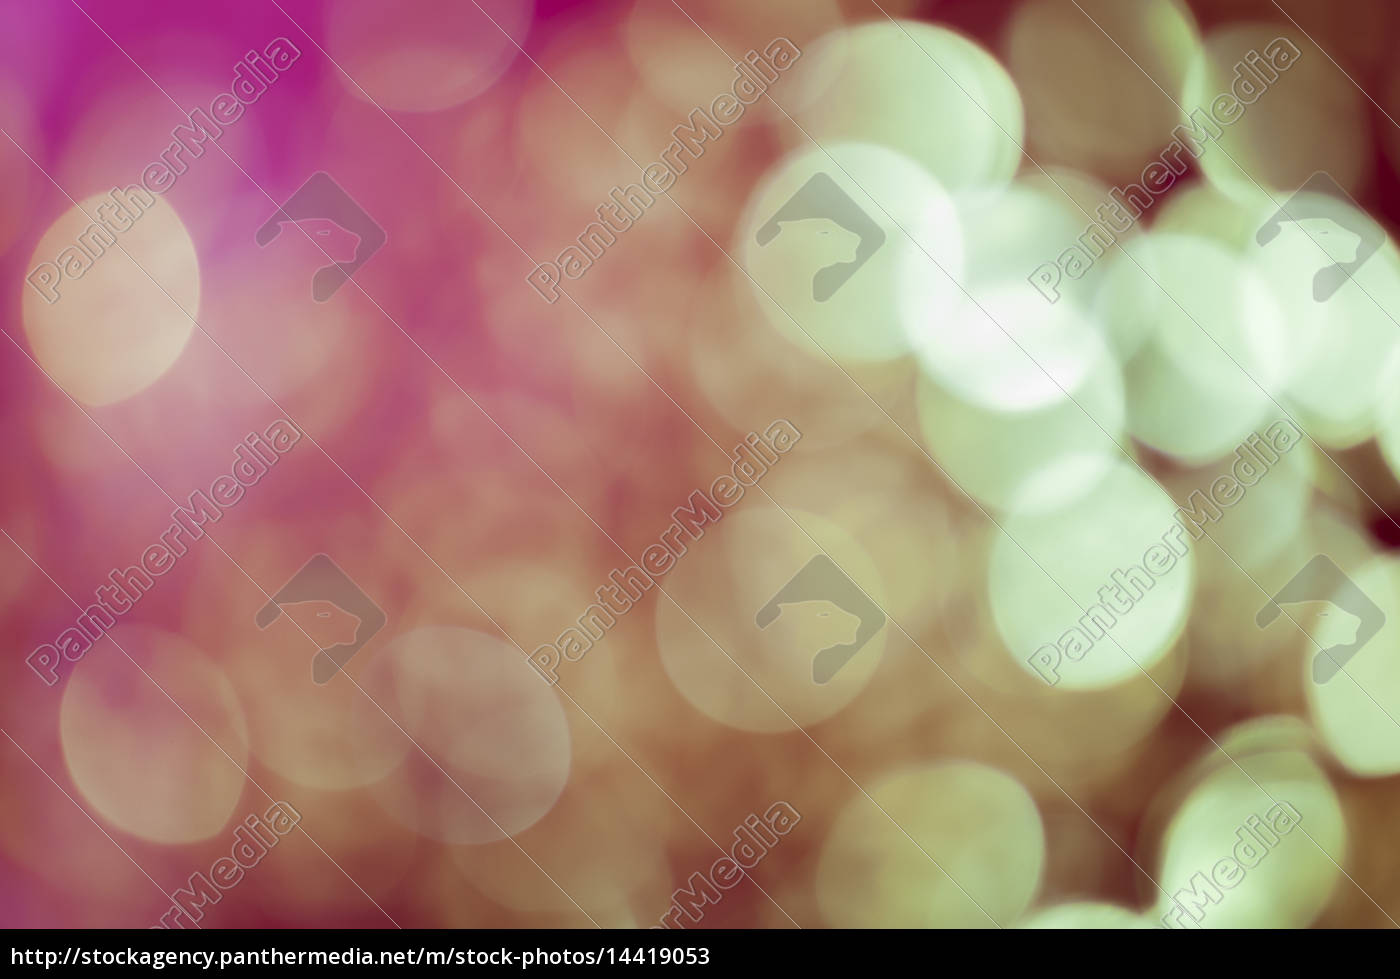 abstract, blurred, background - 14419053